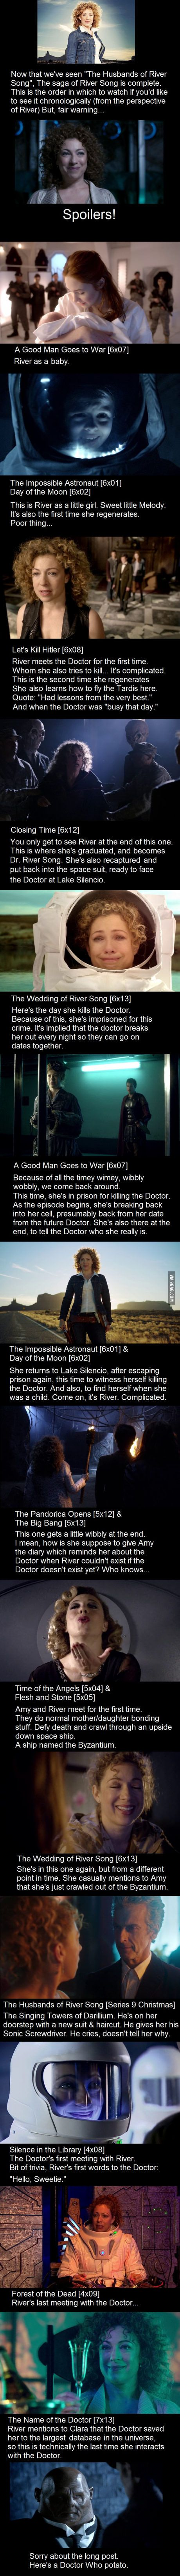 River Song's Timeline  Watch in this order if you'd like to